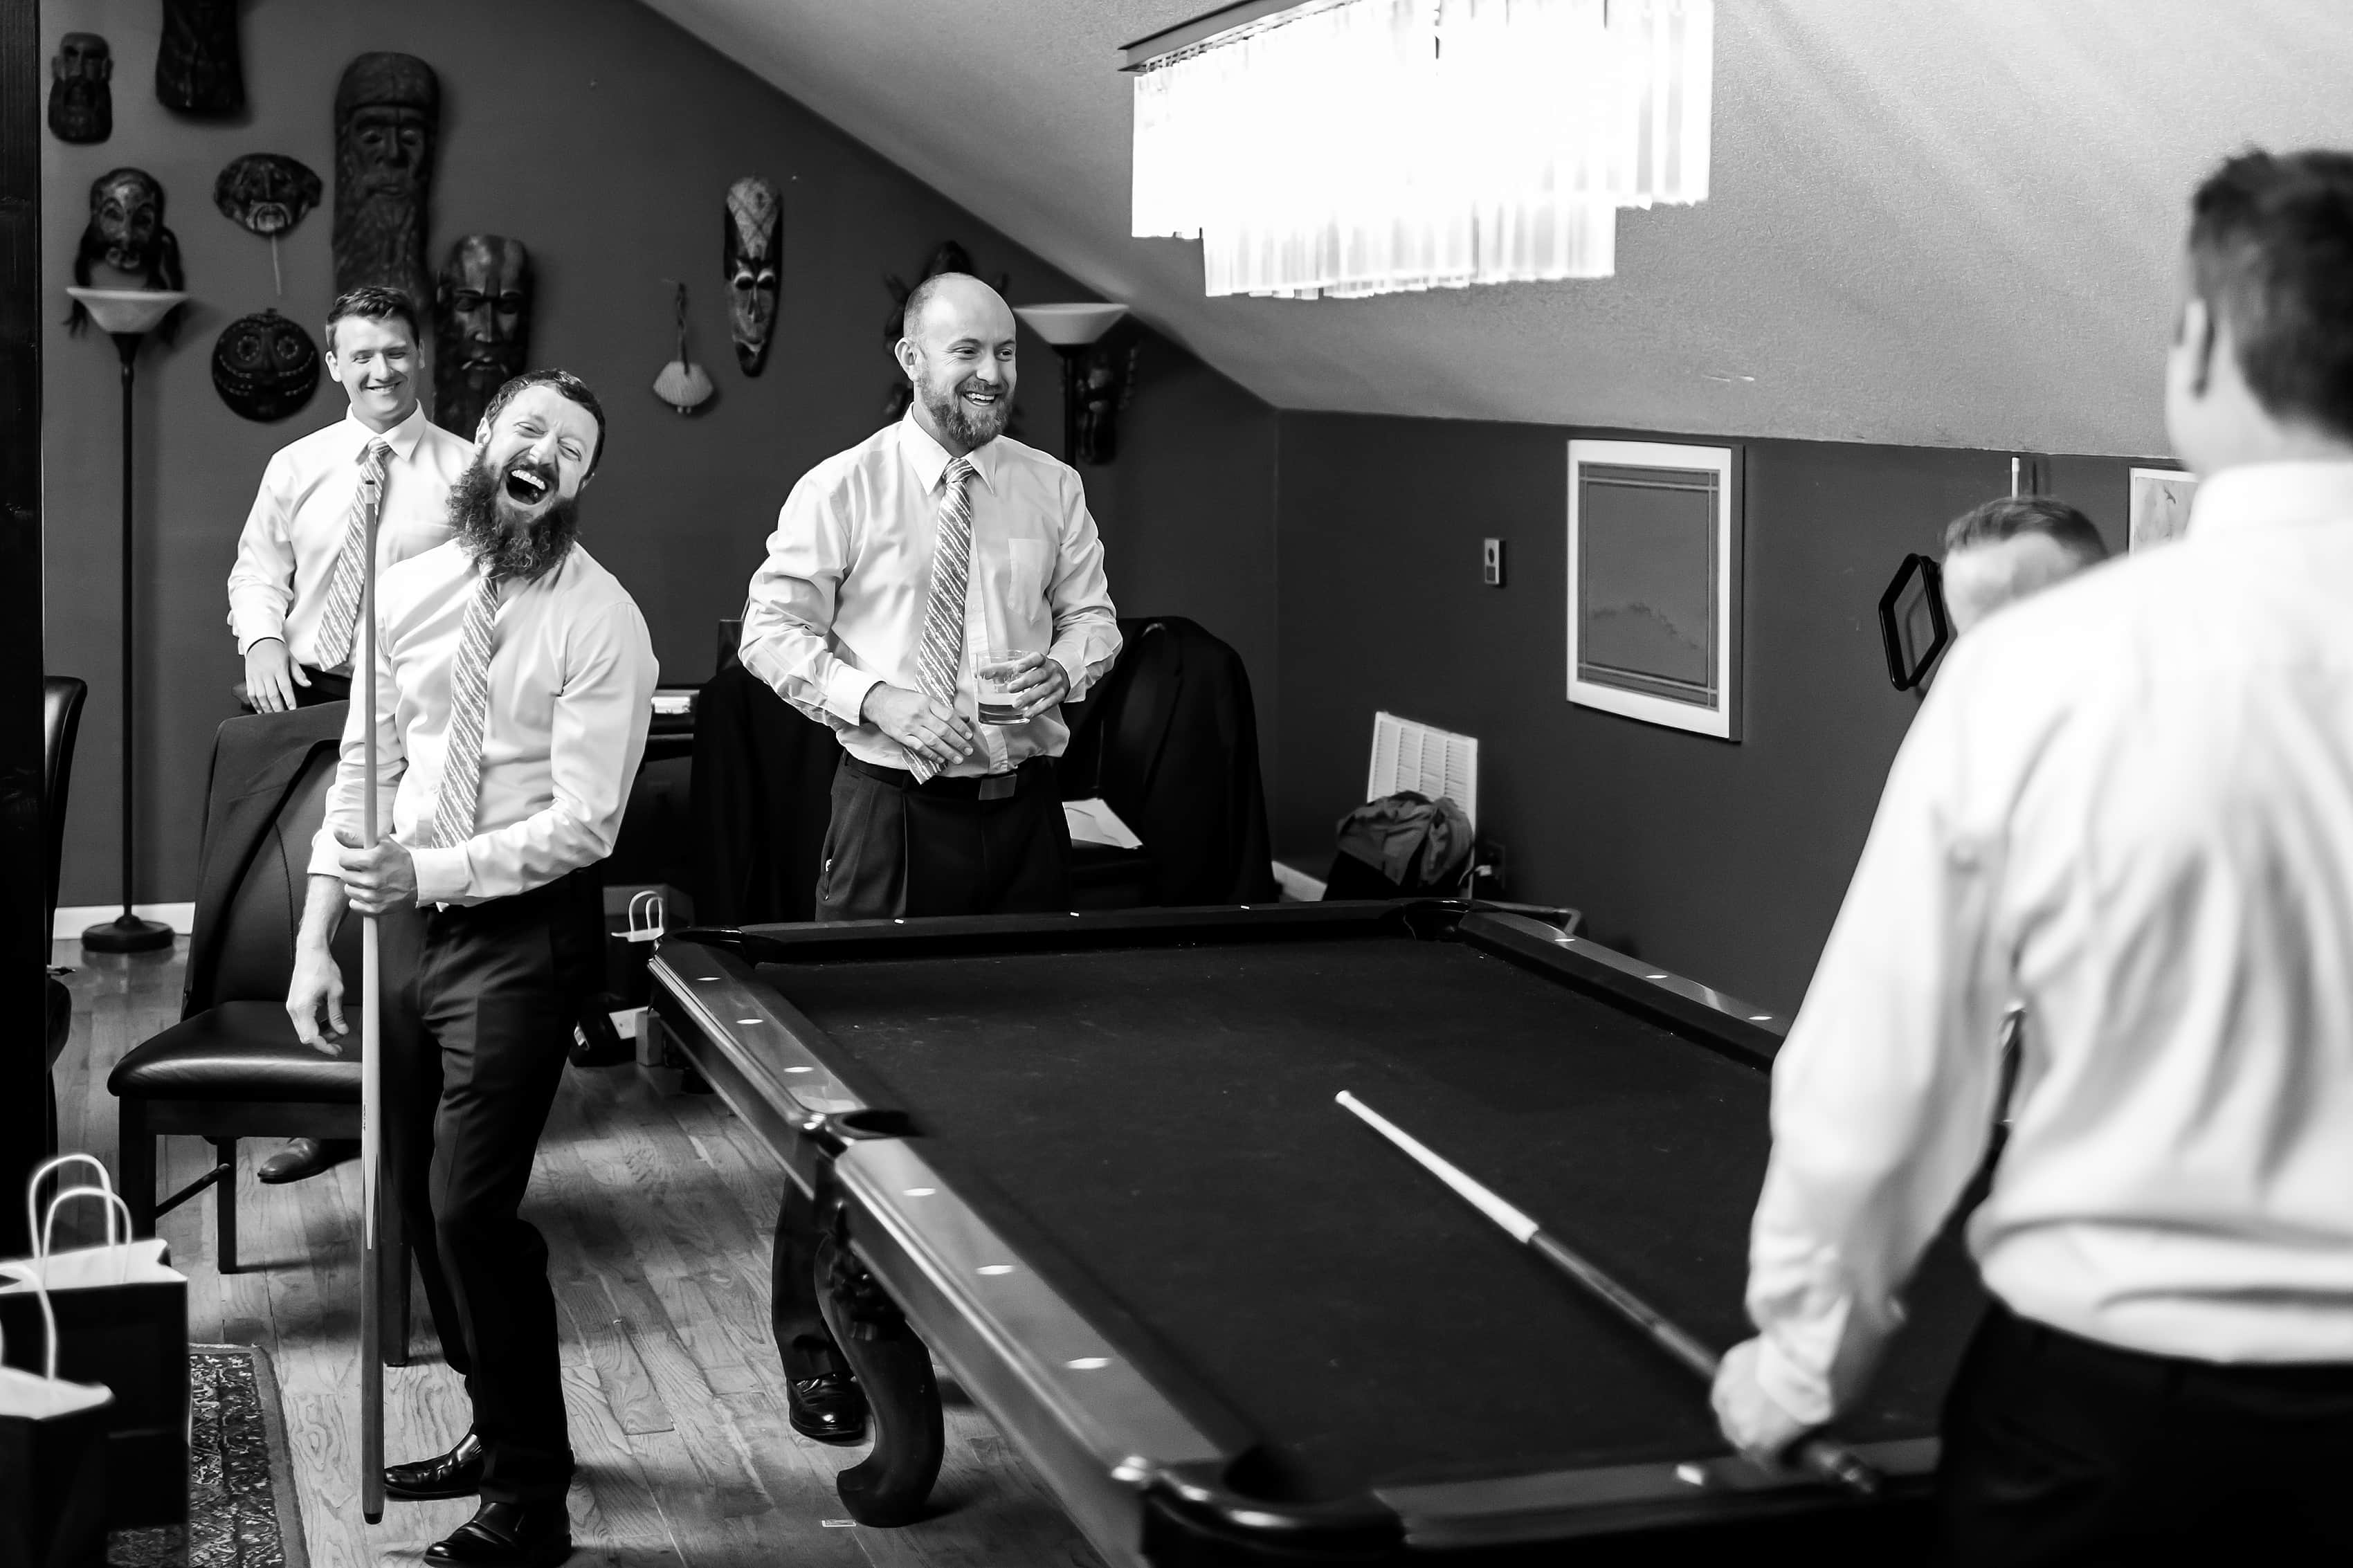 Groomsmen play pool before wedding at Lionsgate Event Center